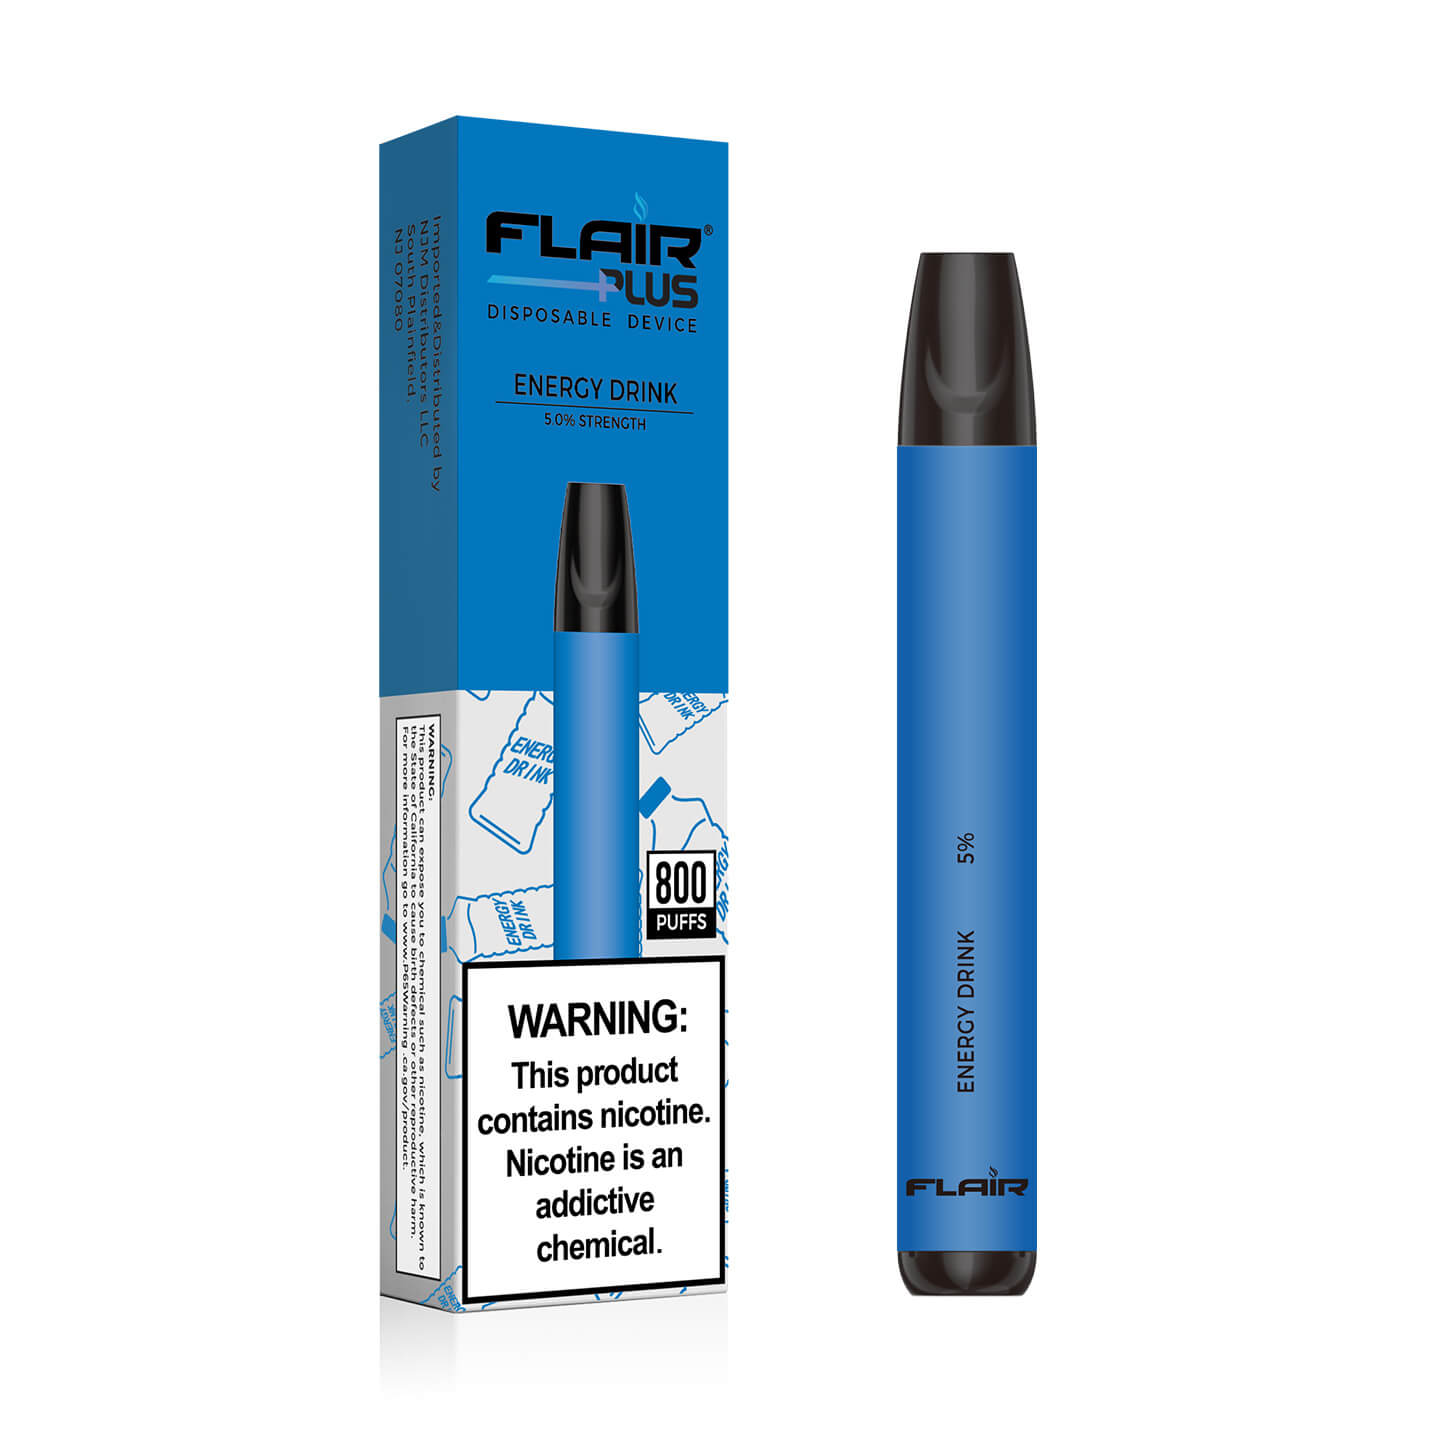 Main image of Flair Plus Disposable Devices (Energy Drink - 800 Puffs)